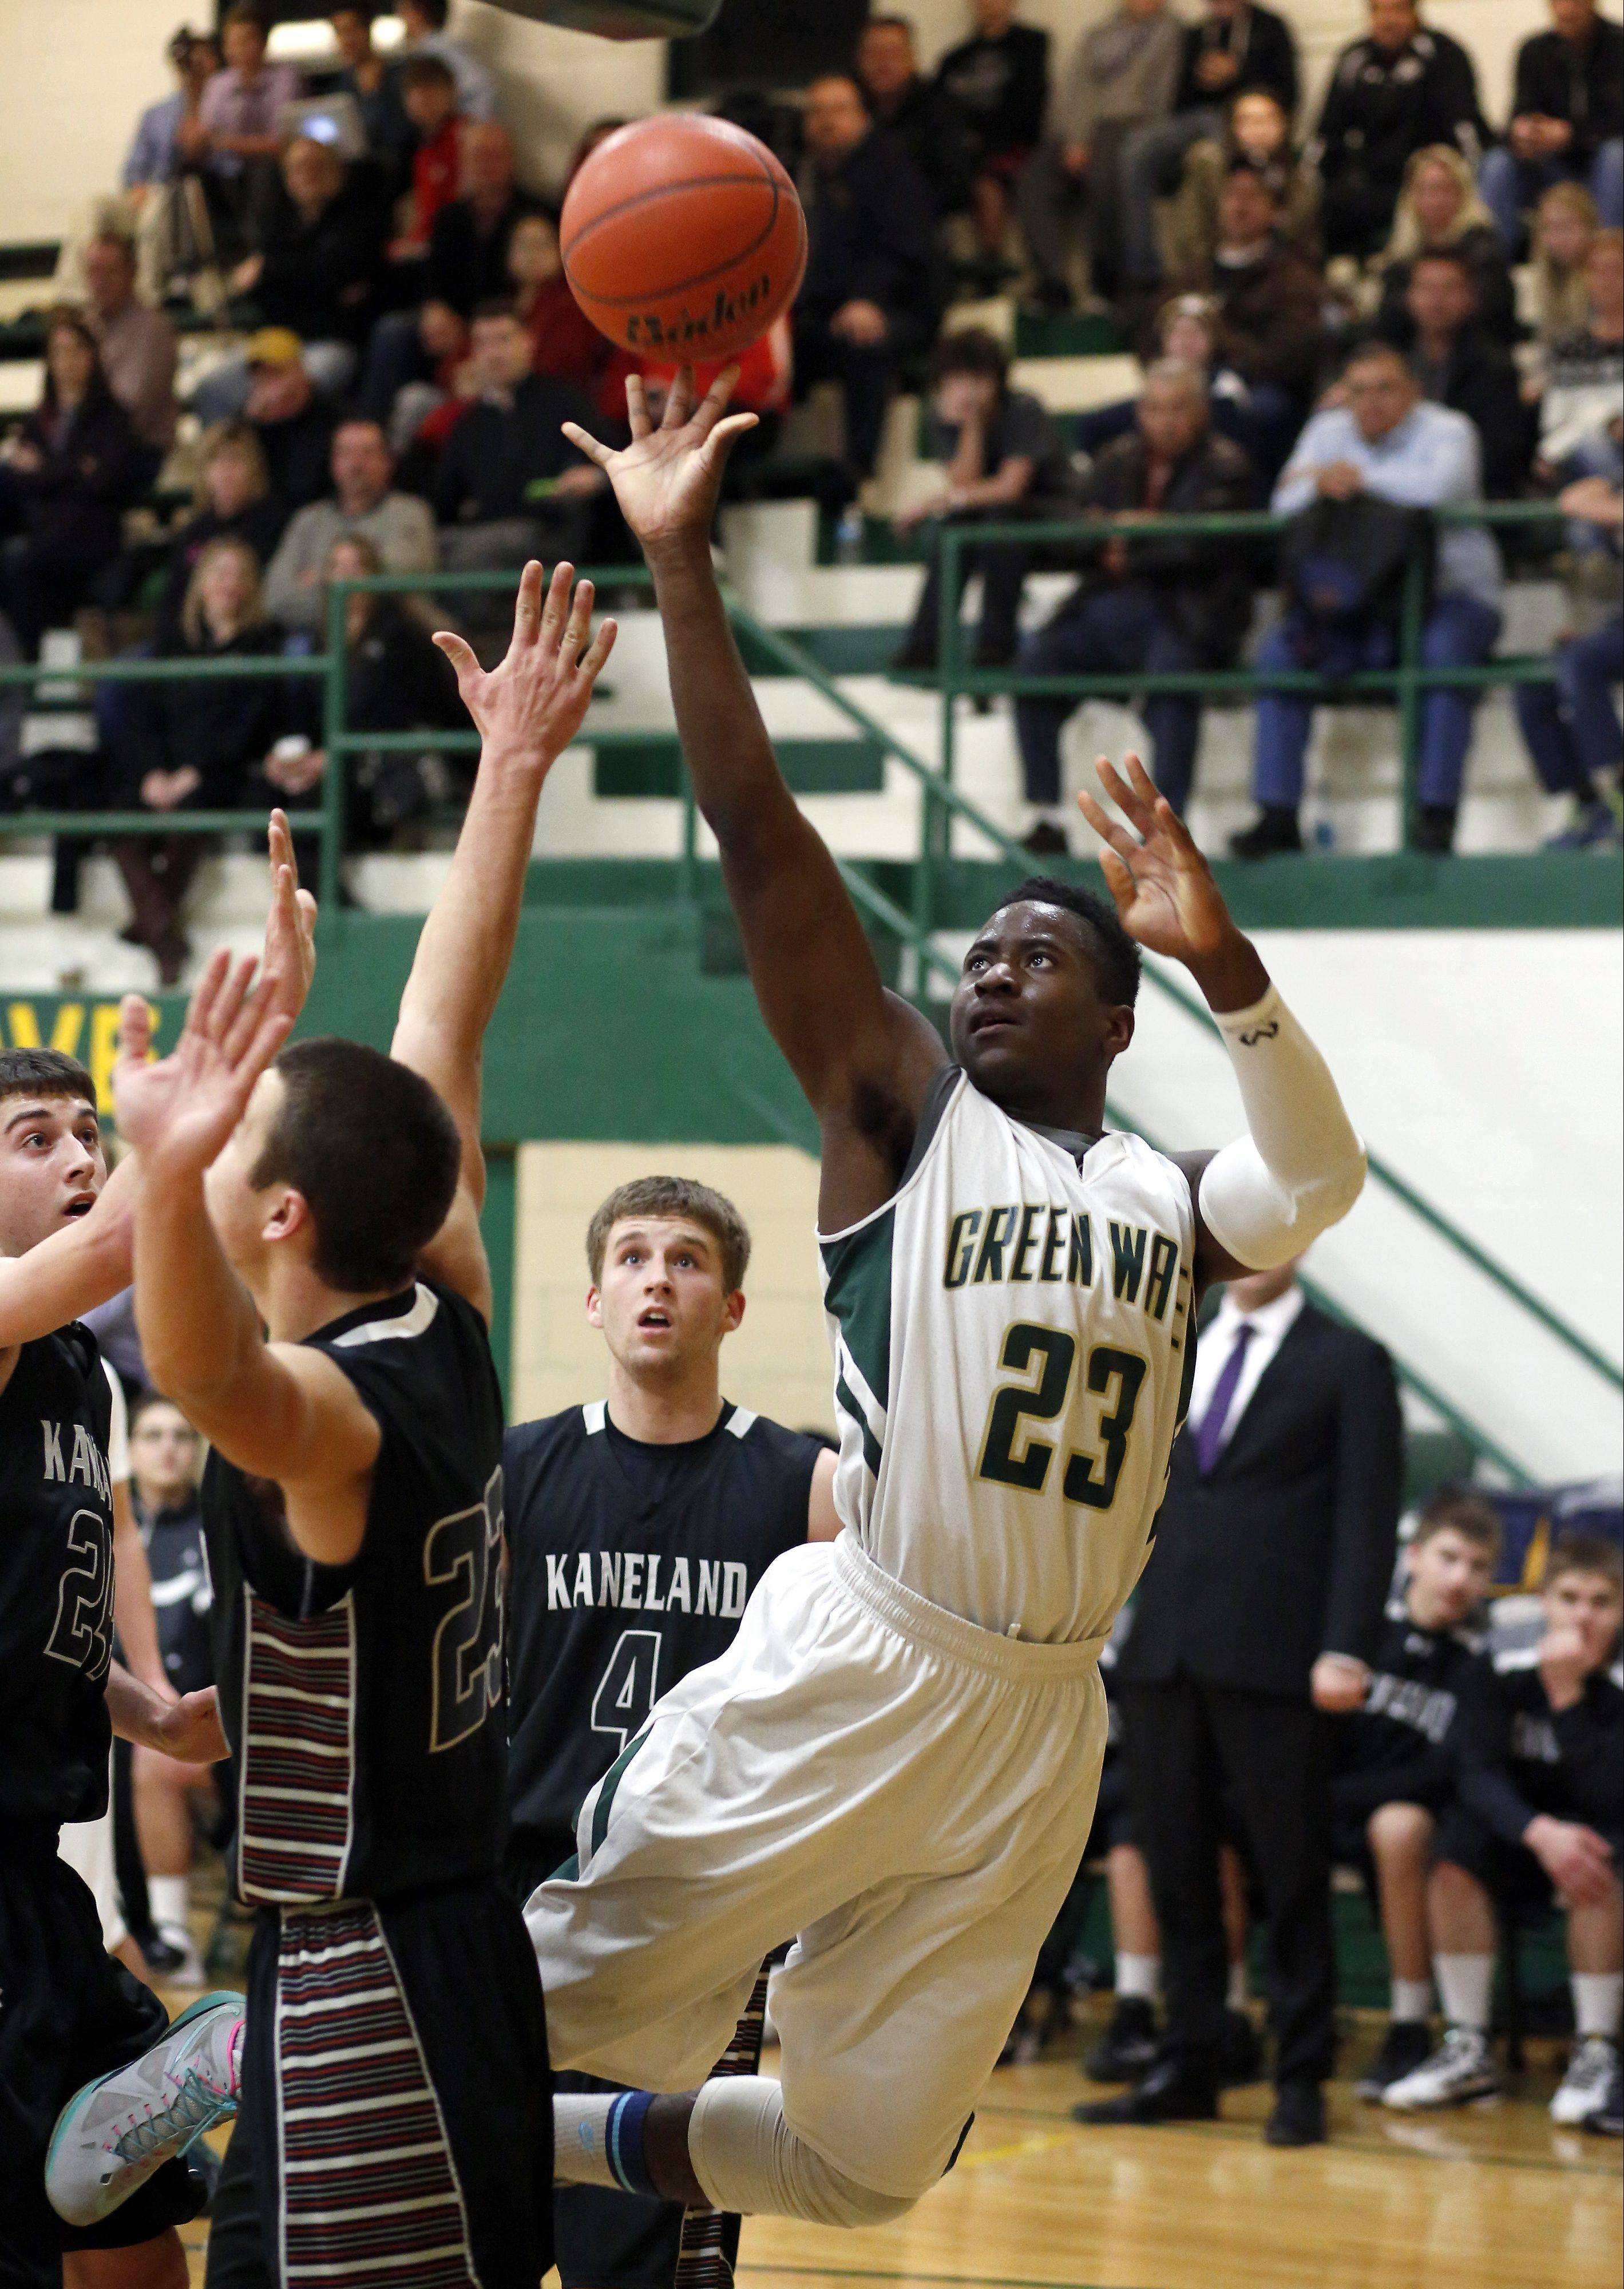 St. Edward's Davontae Elam (23) goes strong to the basket against Kaneland Friday in Elgin.